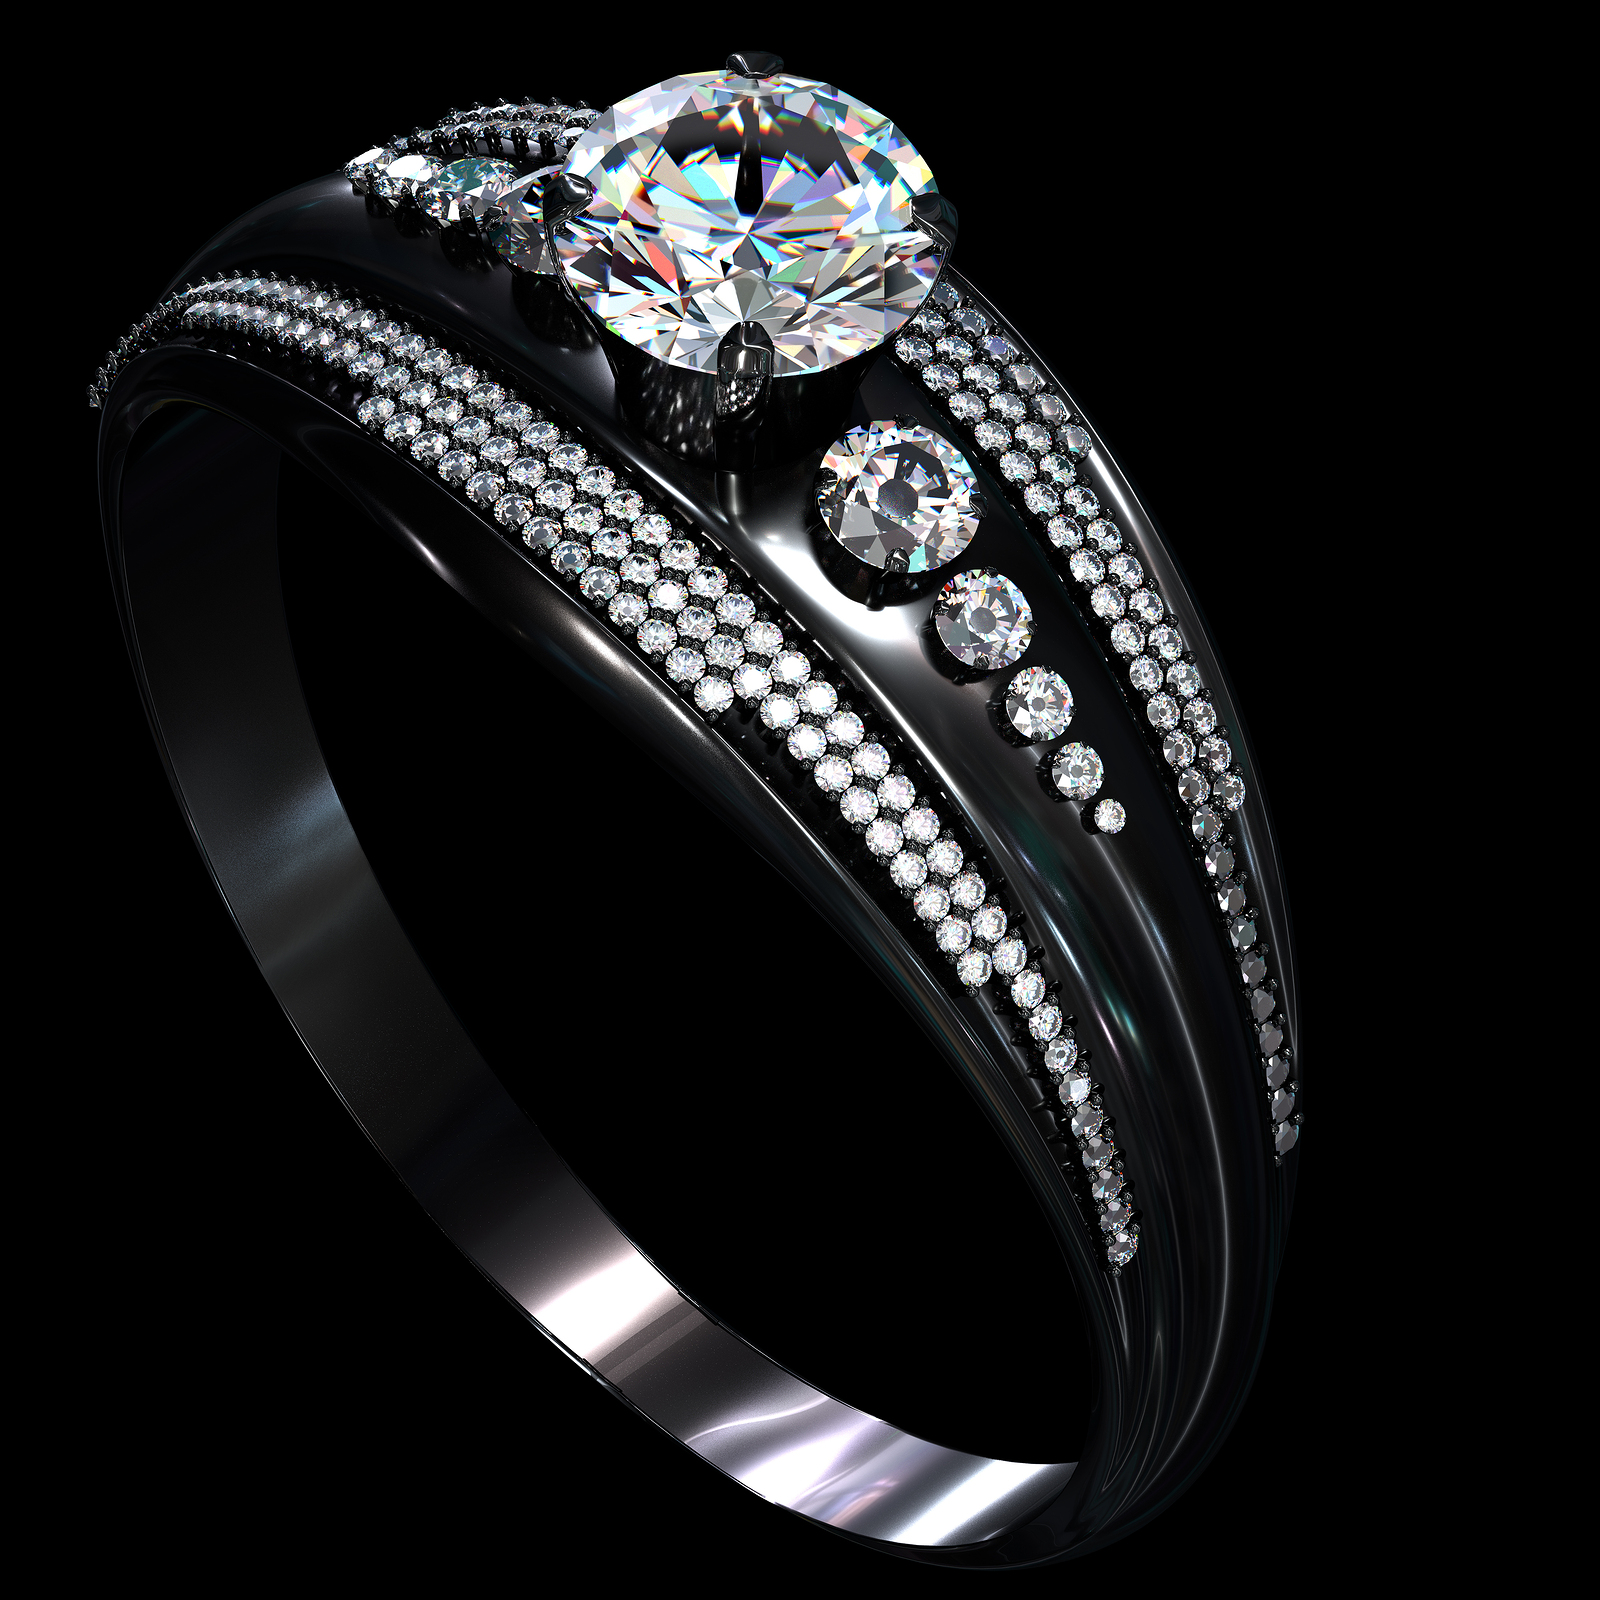 Black gold engagement ring with diamond gem.